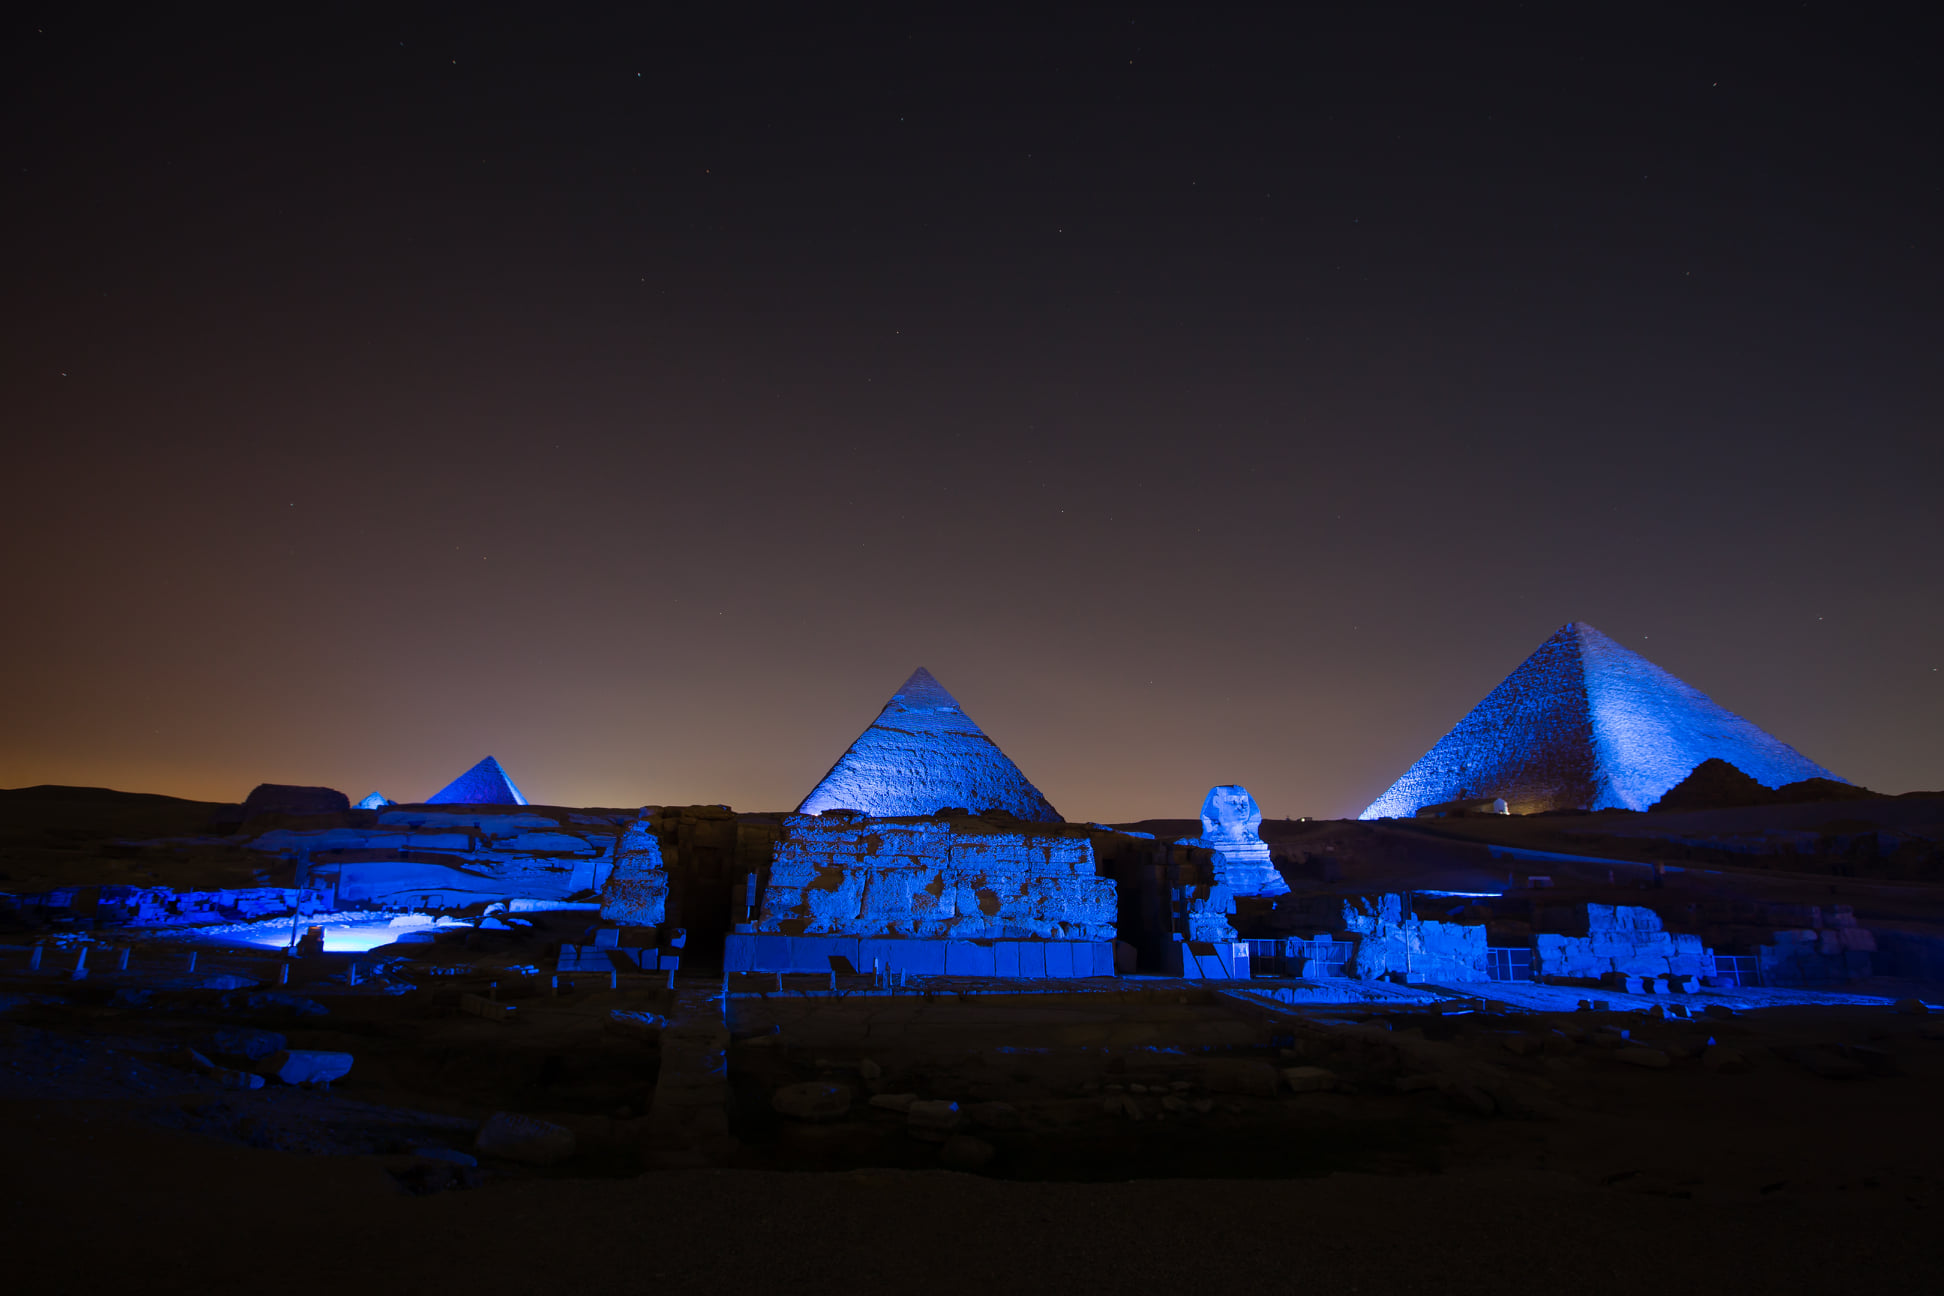 UN and Egypt celebrate 75 years of historic partnership